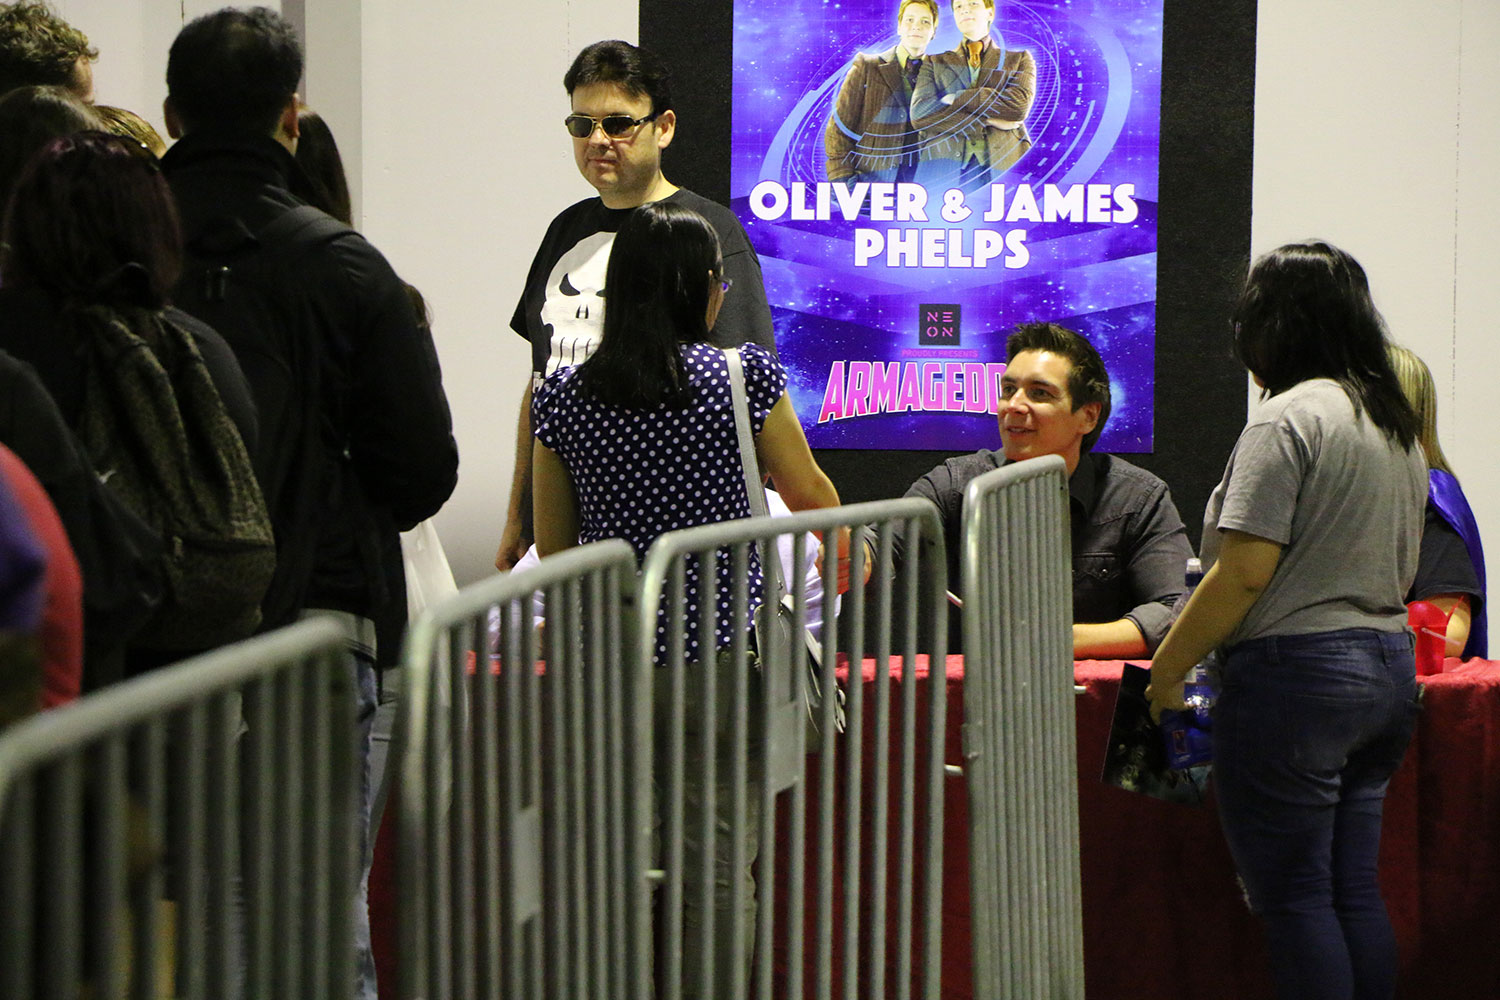 Armageddon Expo 2016 – Auckland – Oct 22 – James and Oliver Phelps Autograph Signing – 6 (Photo credit: Tracey Wong)